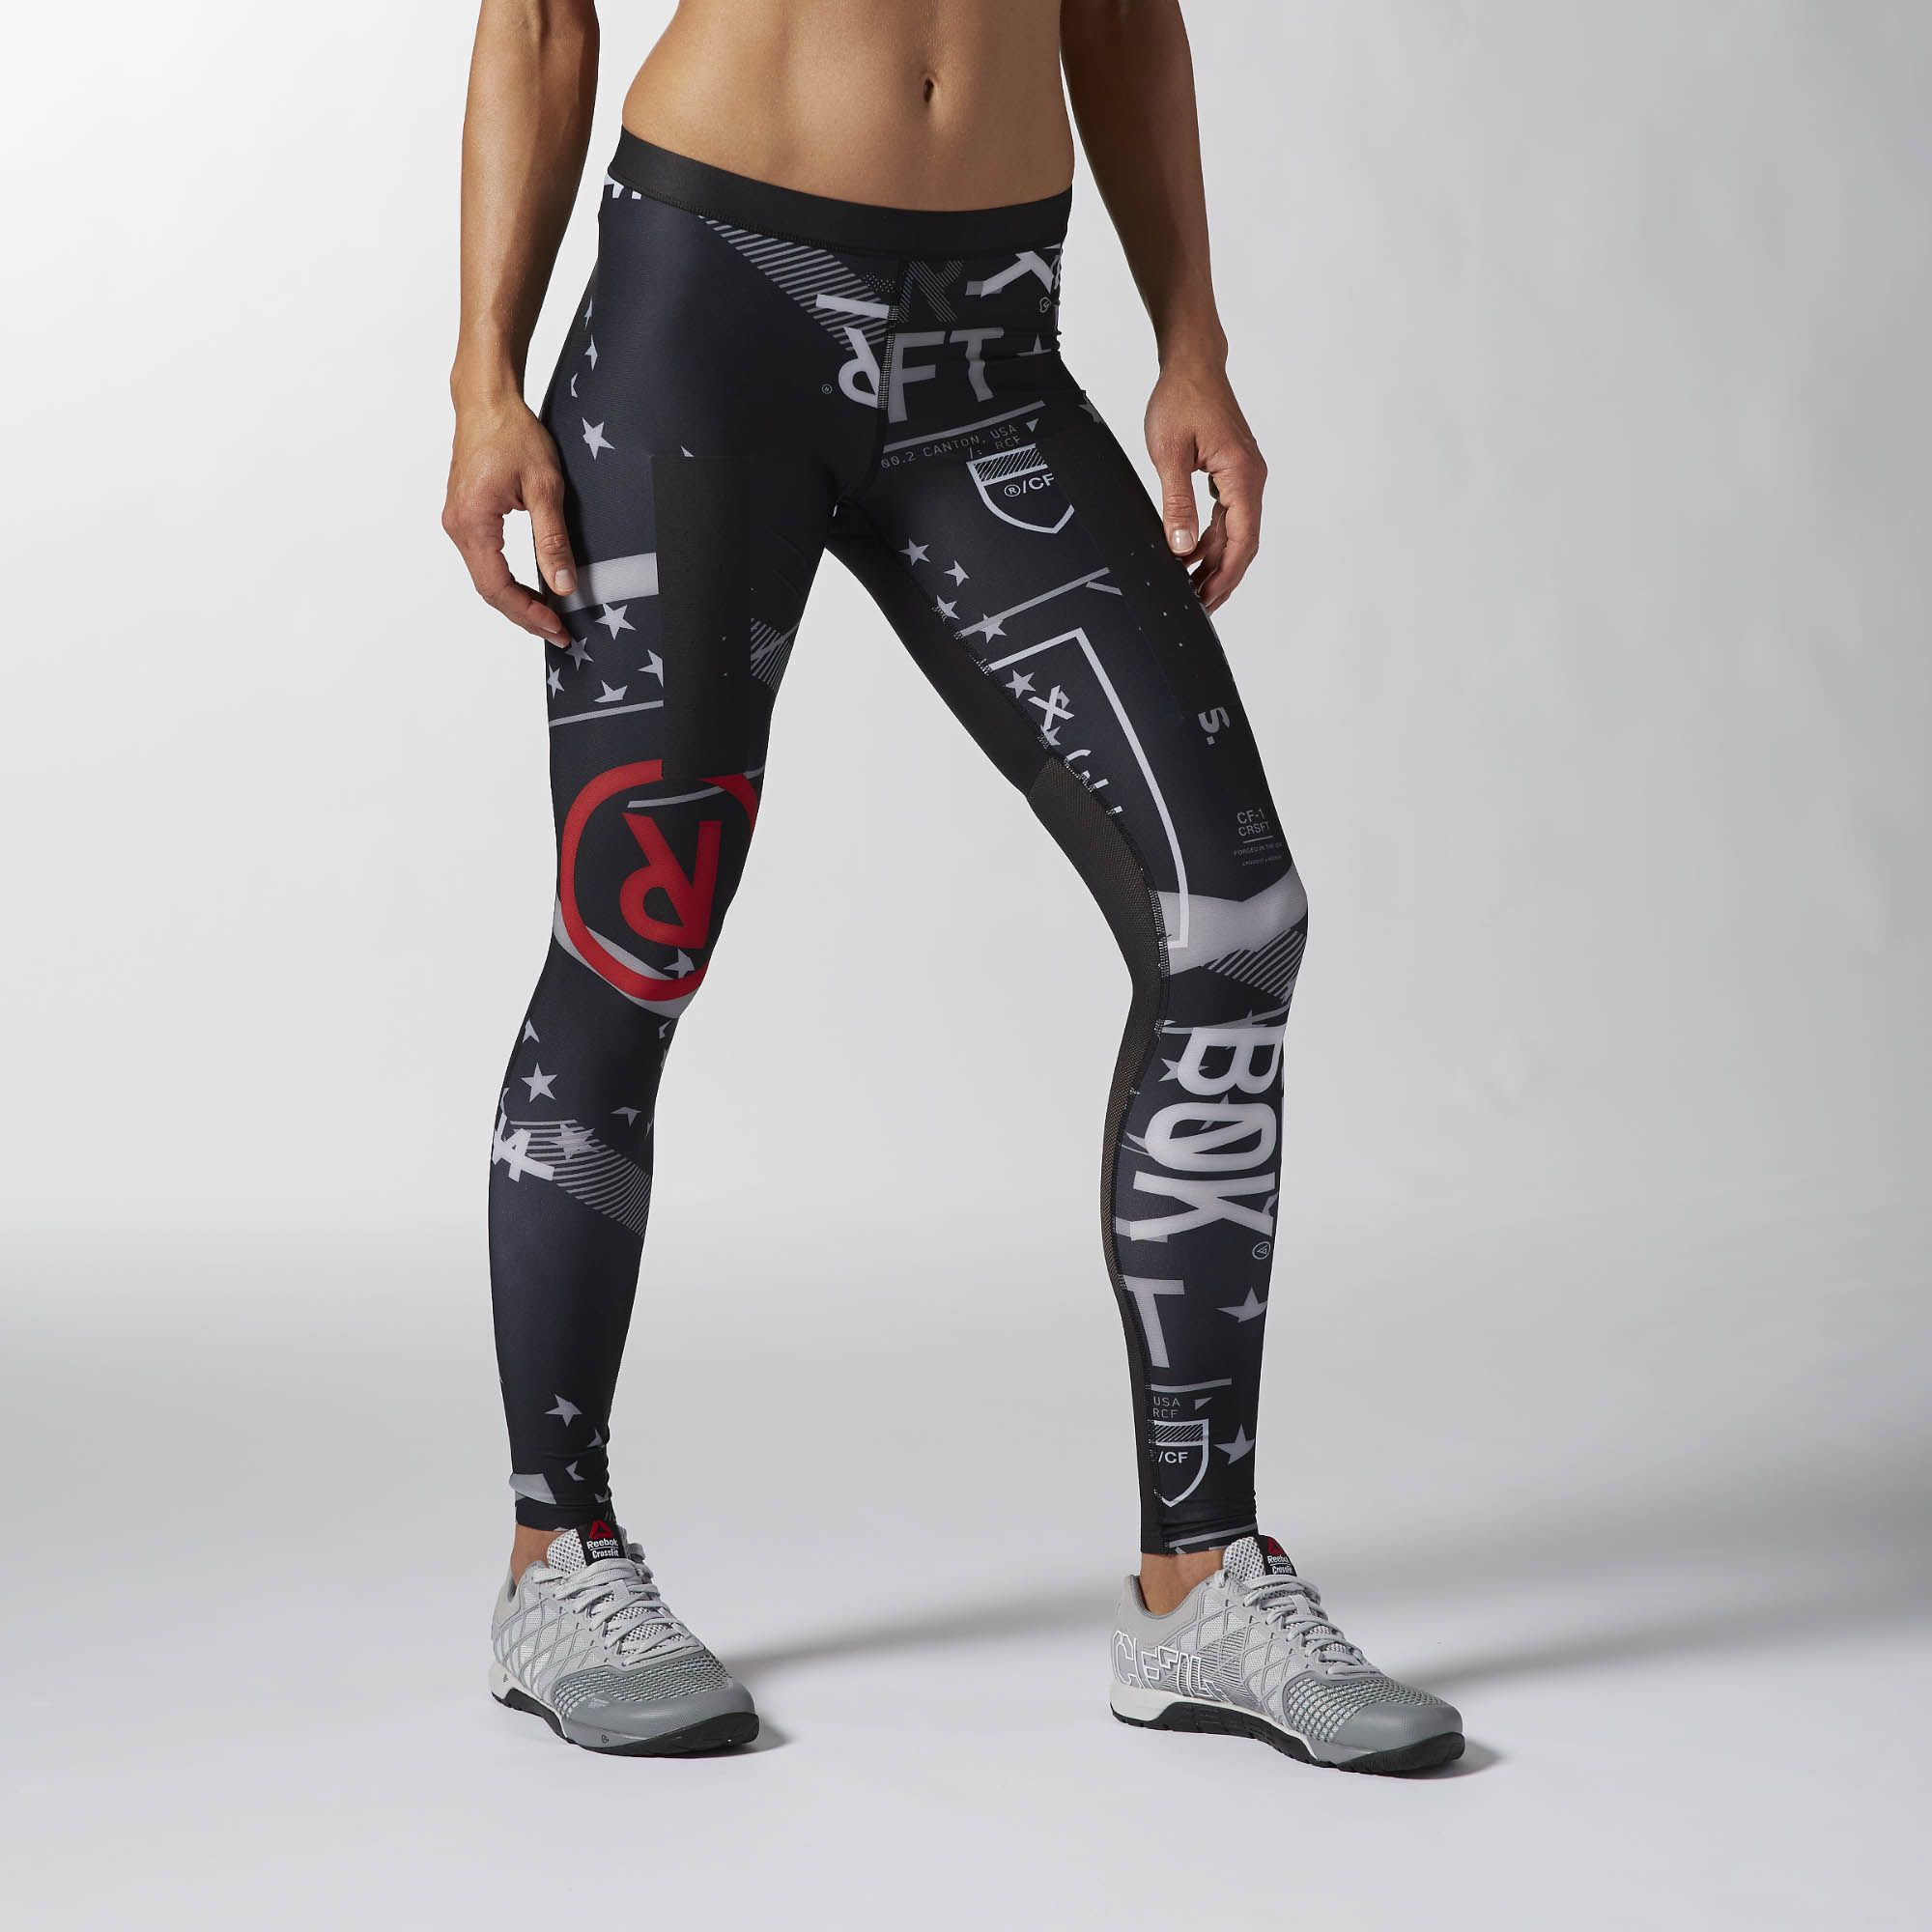 These fit like a dream and stay up while you move.